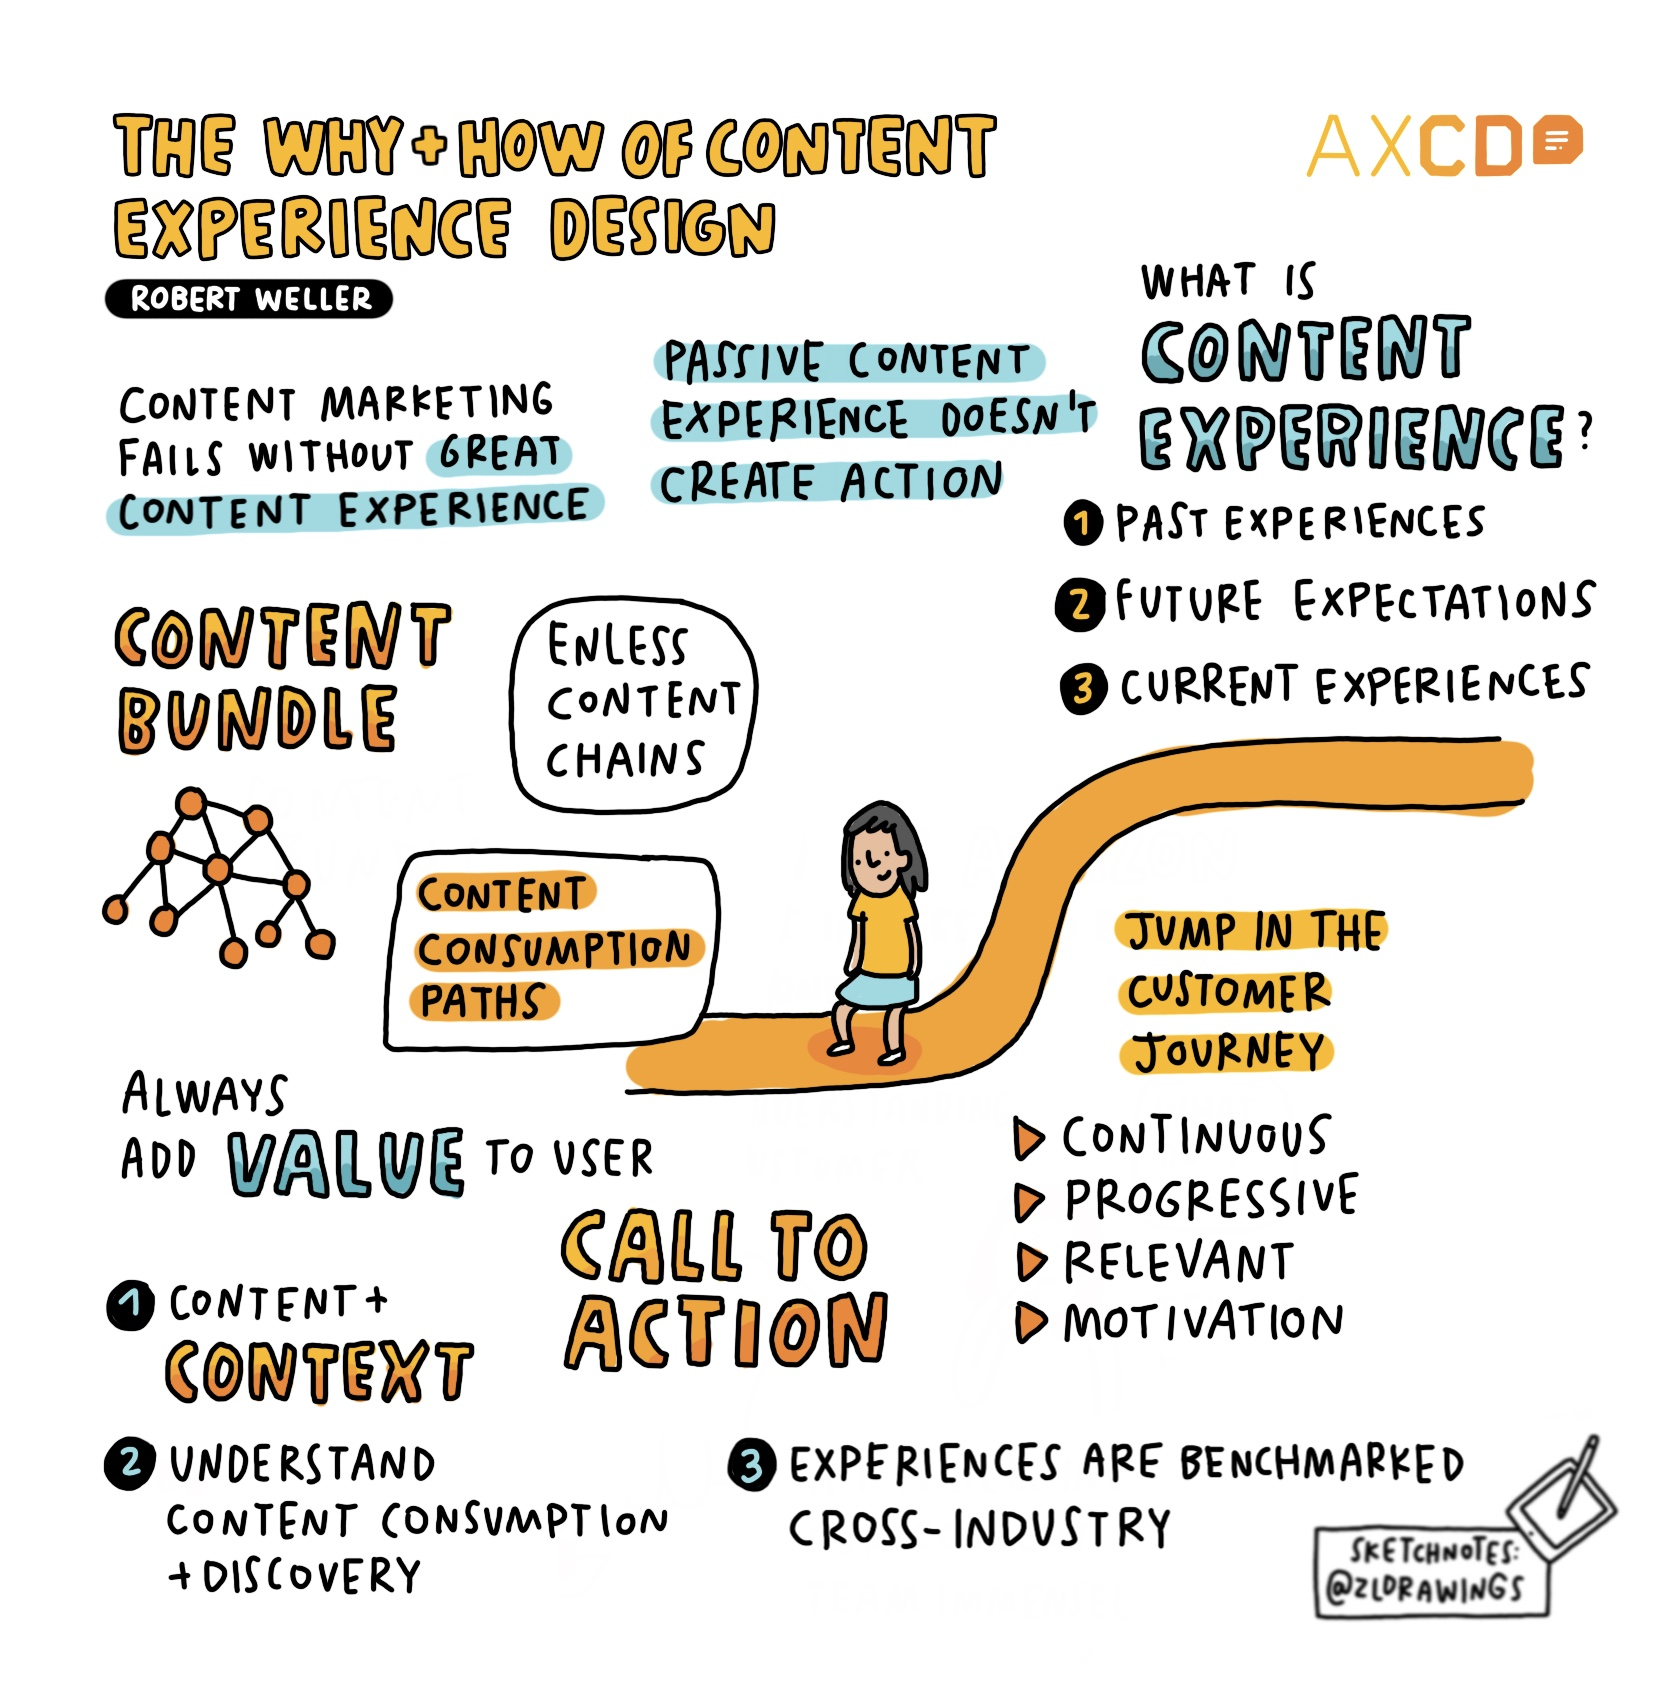 Sketchnote of AXCD Talk: the why and how of content experience design